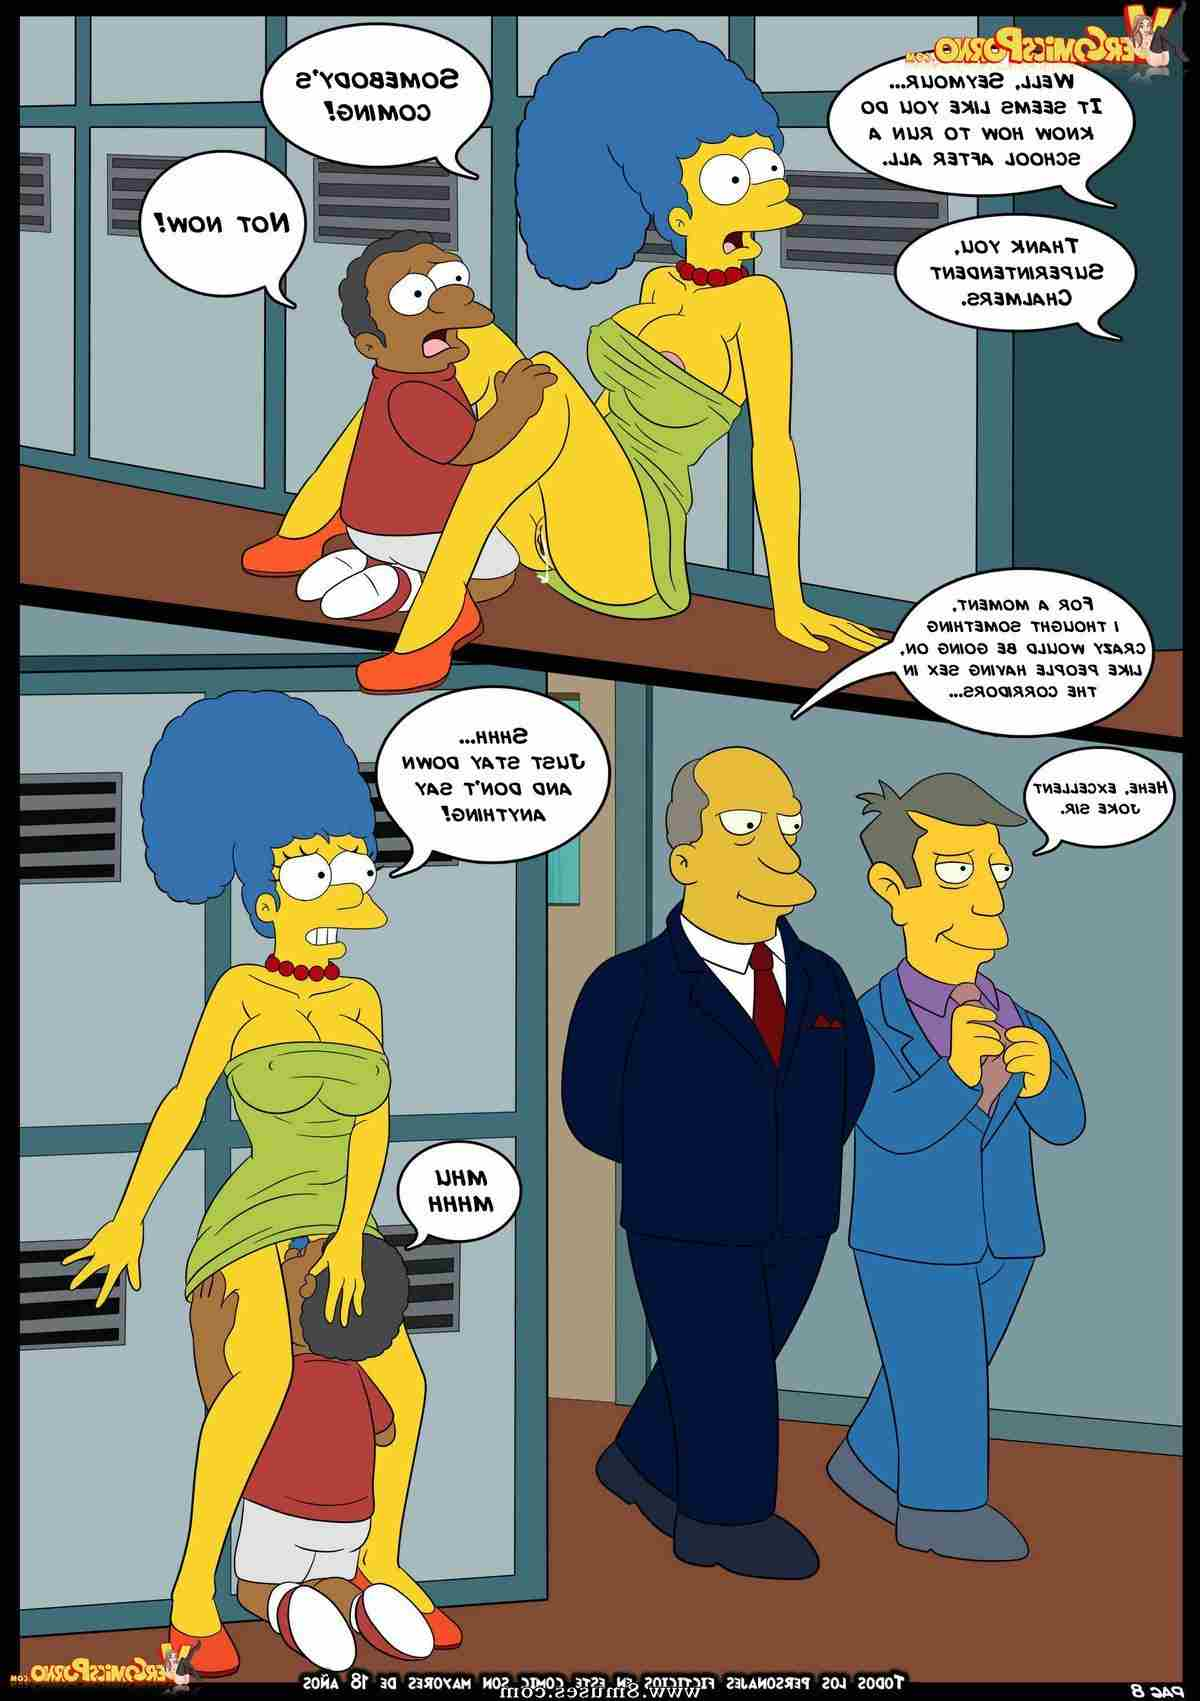 Croc-Comics/The-Simpsons-Love-for-the-Bully The_Simpsons_-_Love_for_the_Bully__8muses_-_Sex_and_Porn_Comics_9.jpg